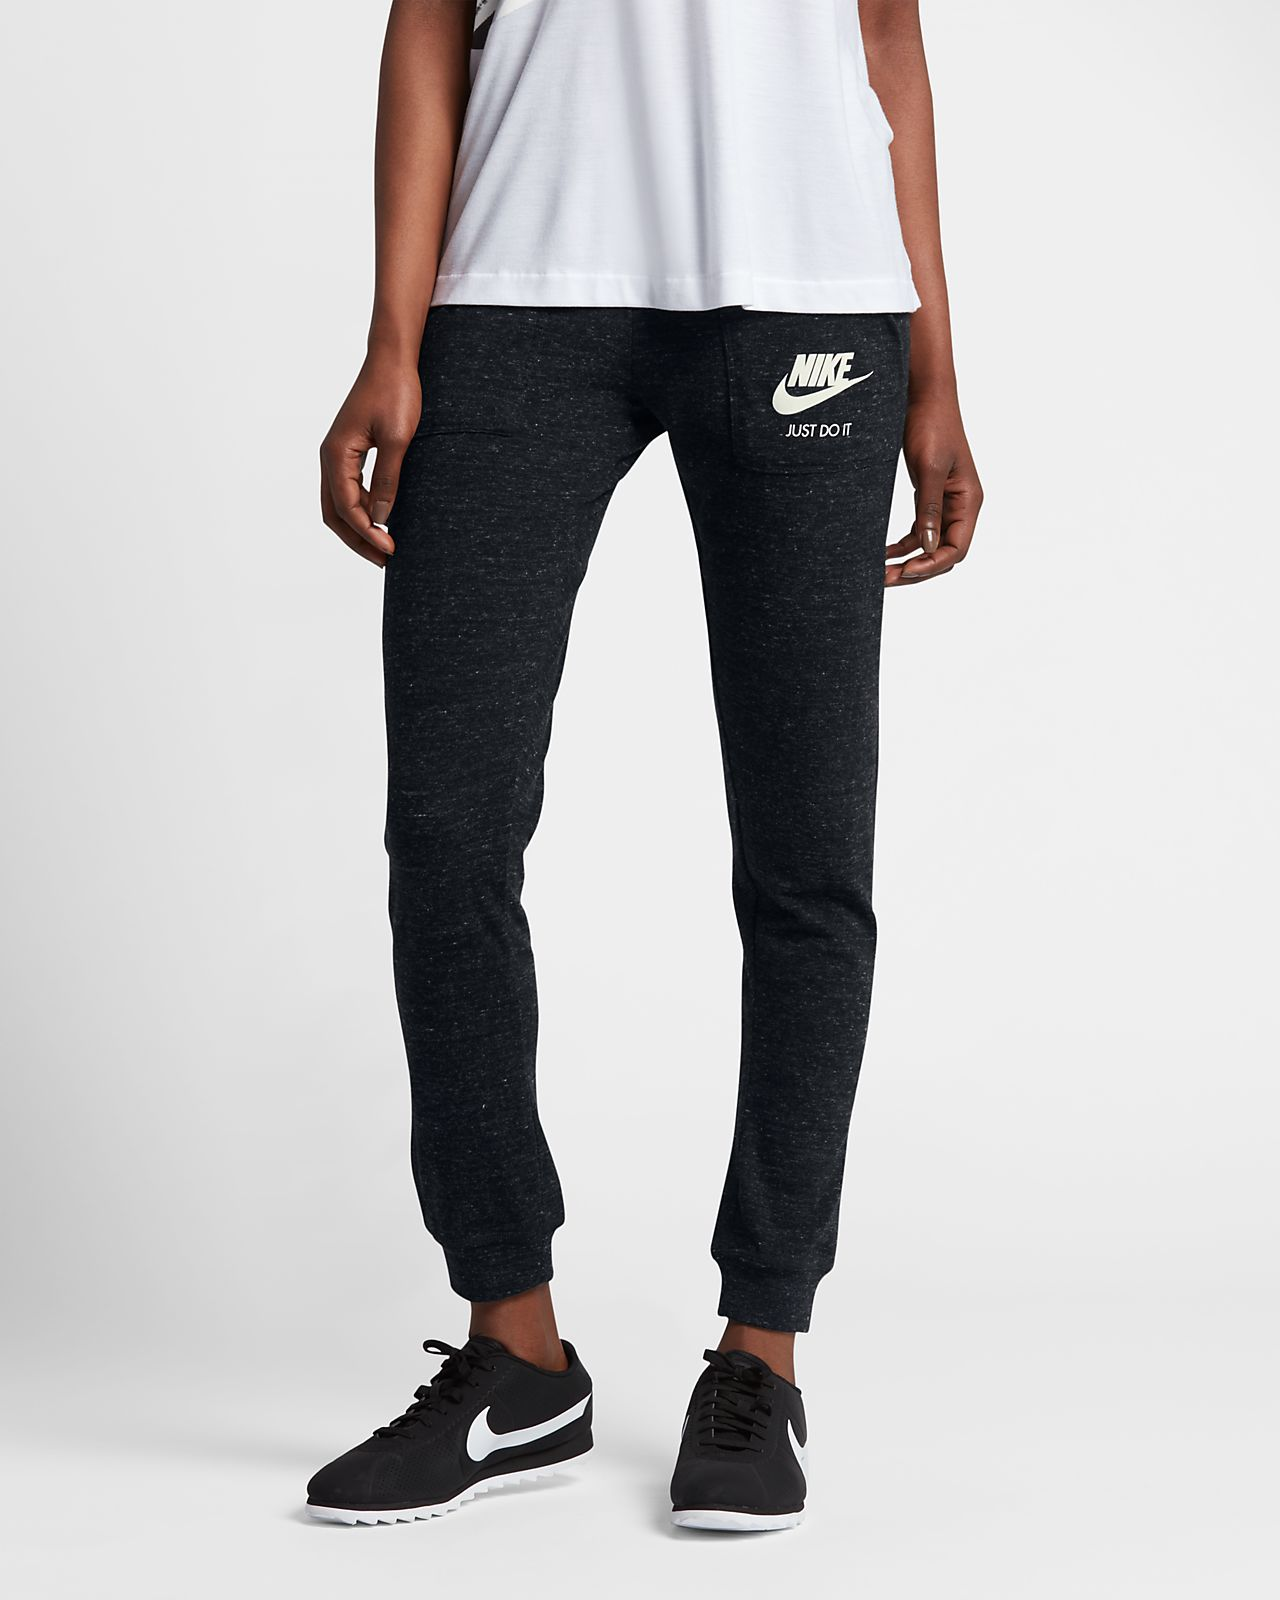 pantalon nike just do it femme